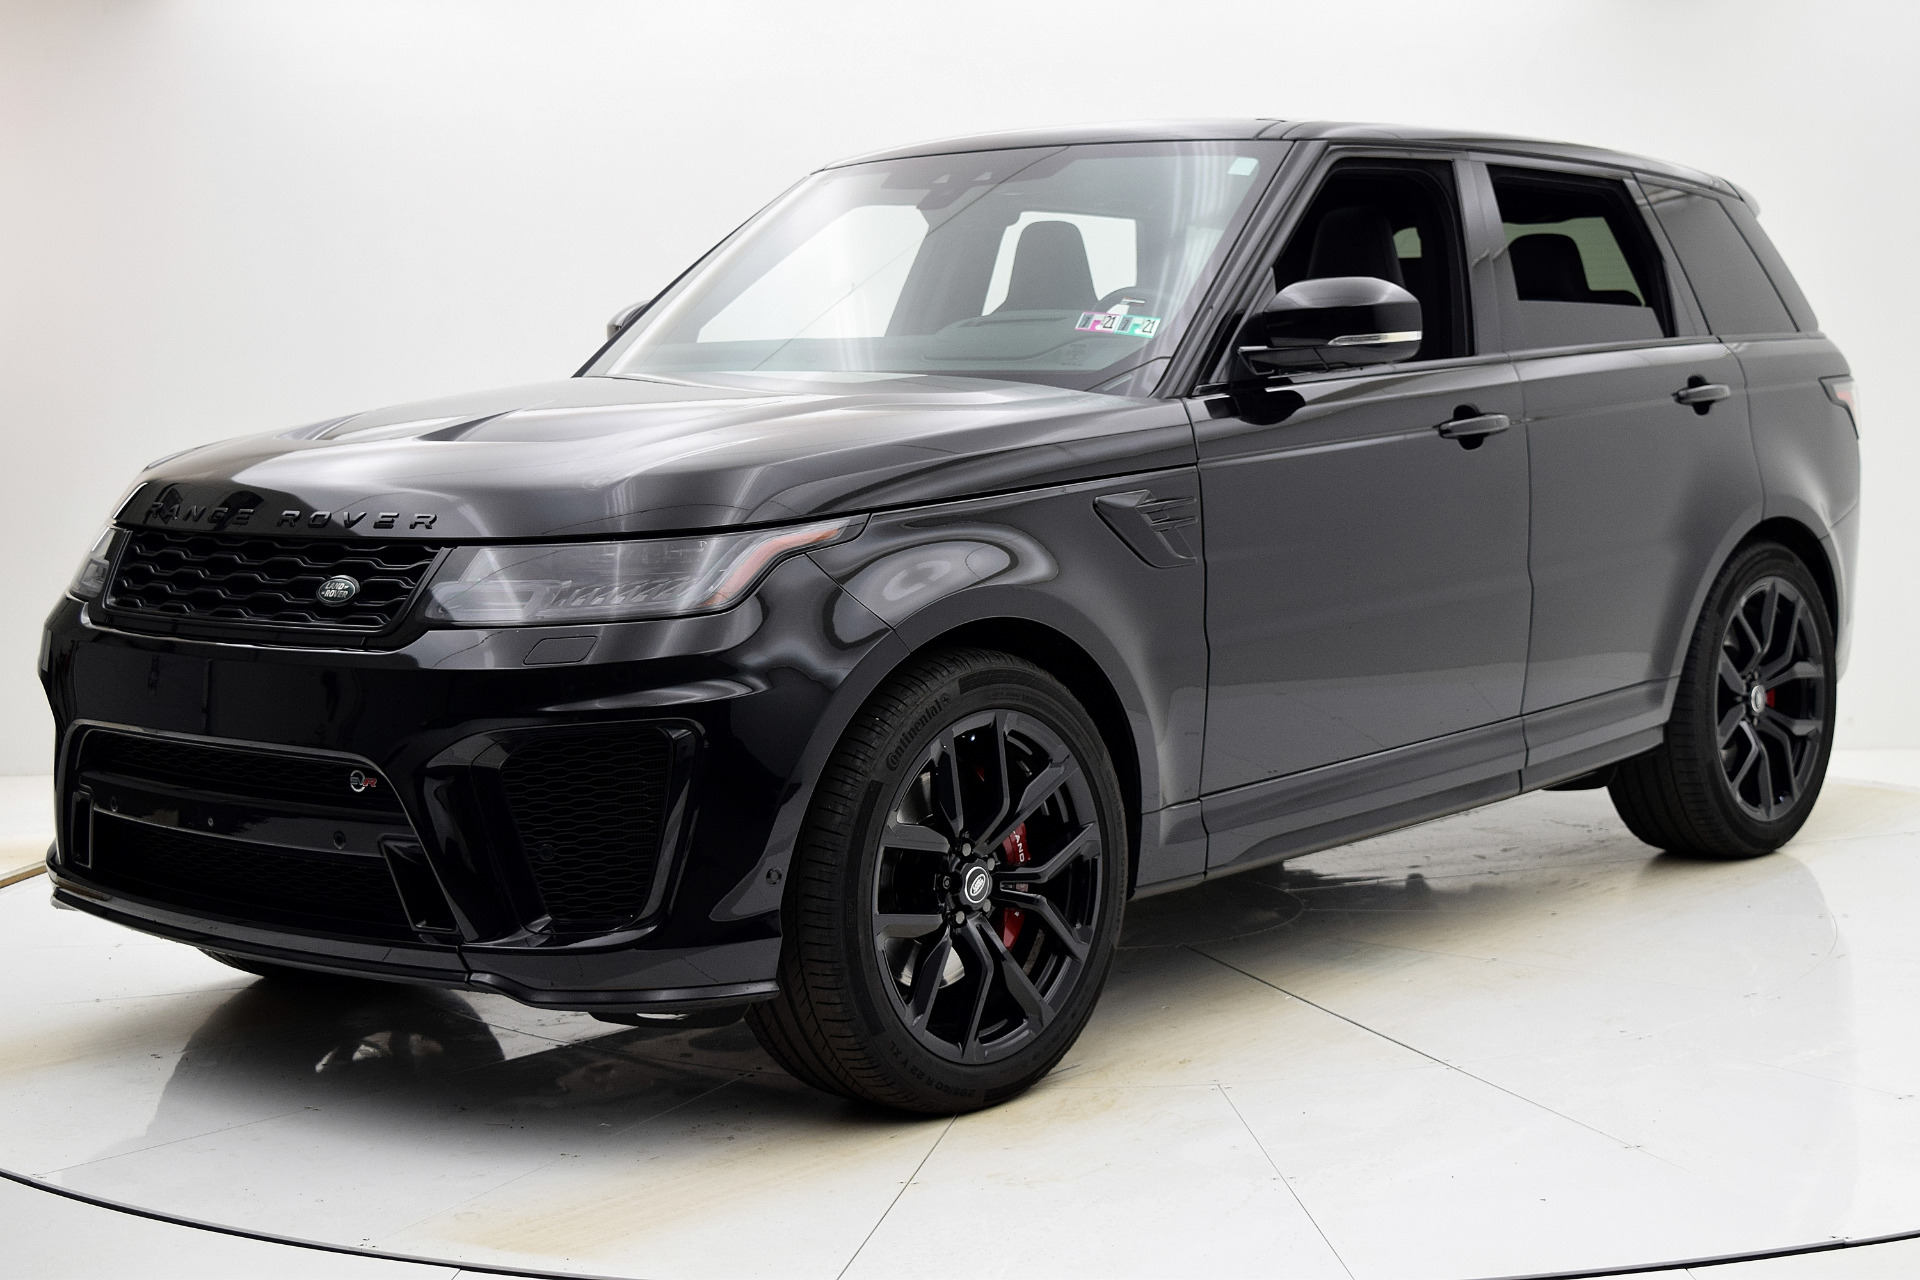 Used 2018 Land Rover Range Rover Sport SVR for sale $99,880 at F.C. Kerbeck Aston Martin in Palmyra NJ 08065 2